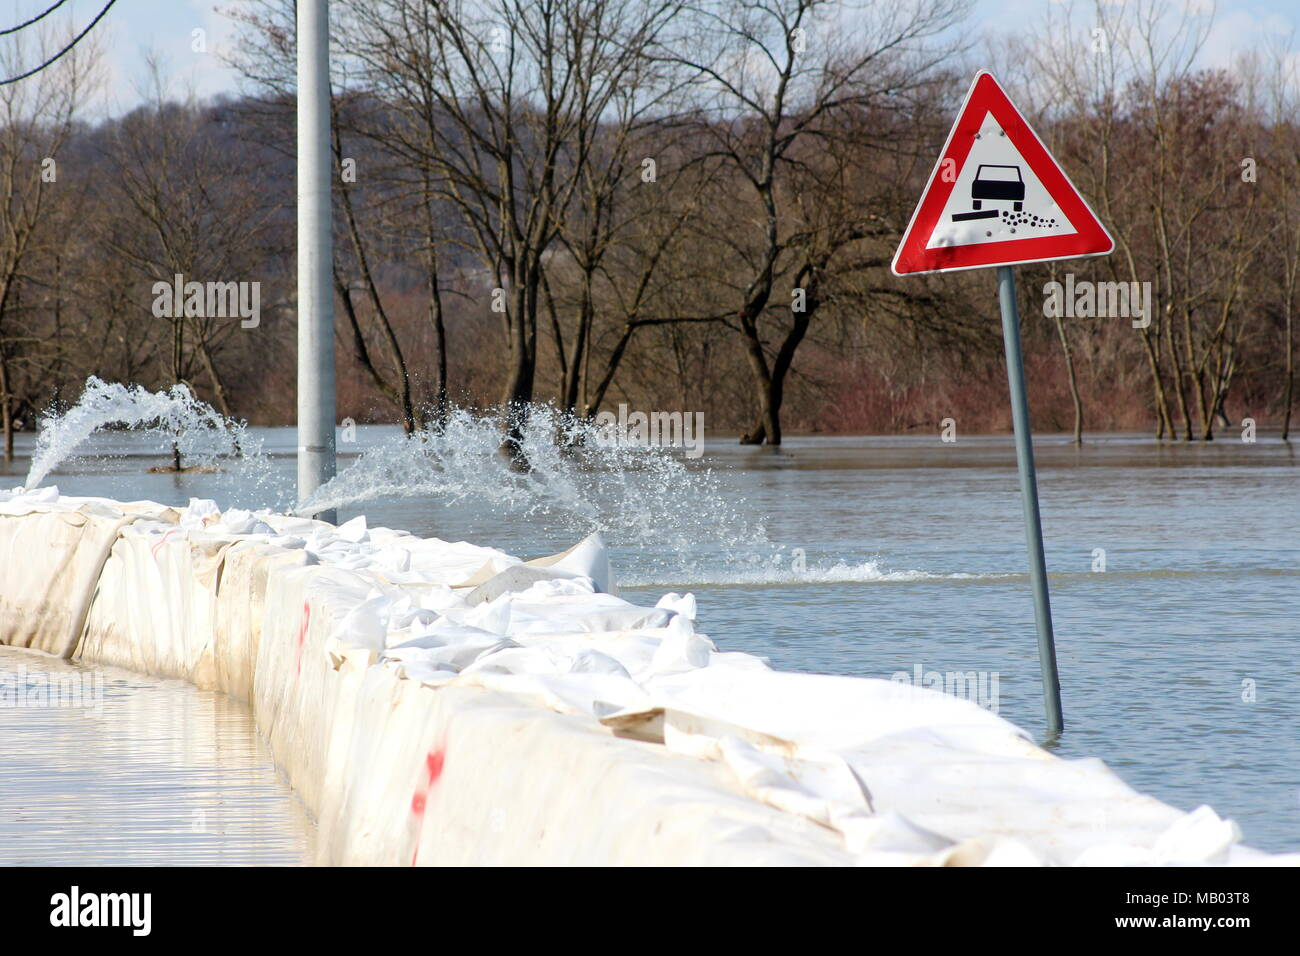 Flooded soft verge road sign next to box barriers flood protection with pumps pumping water, trees, branches, concrete electrical pole and blue sky in - Stock Image